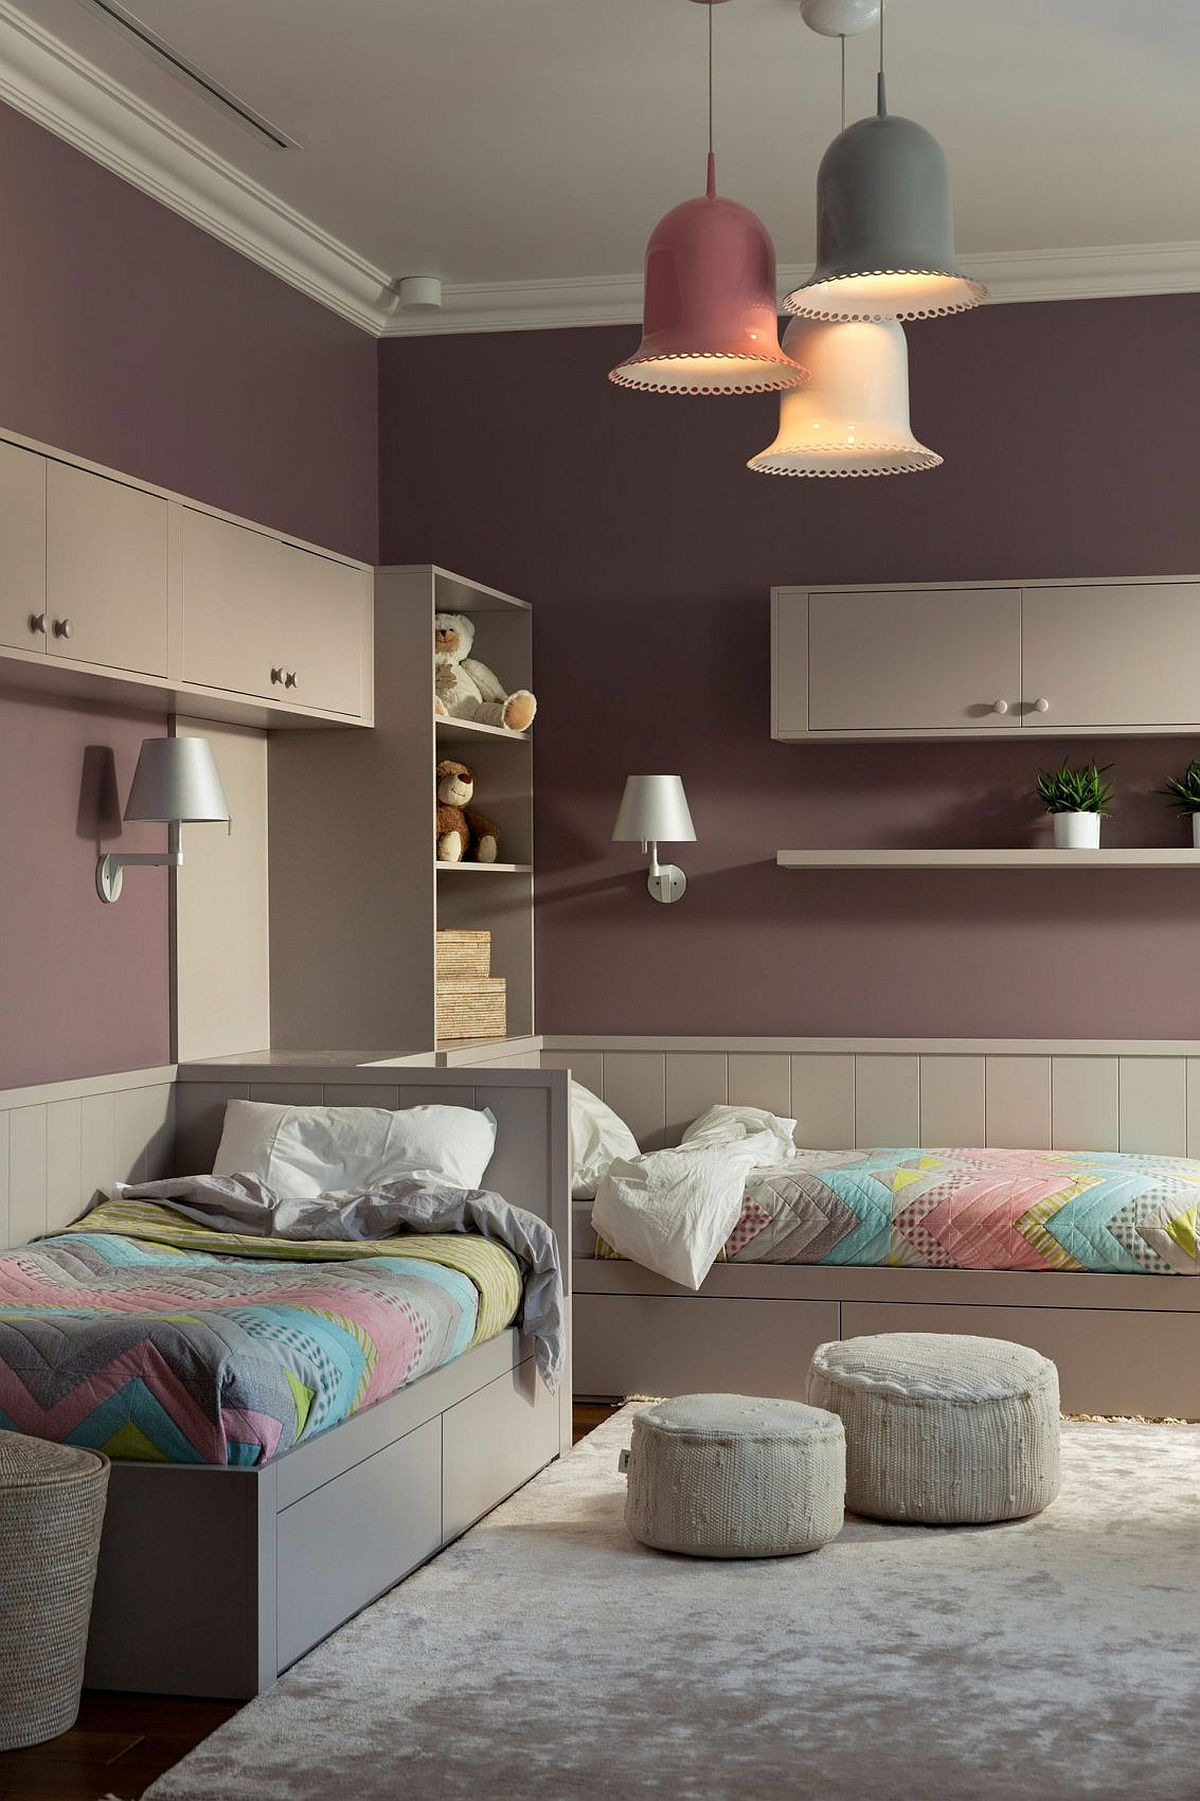 Colorful kids' room with twin beds in the corner